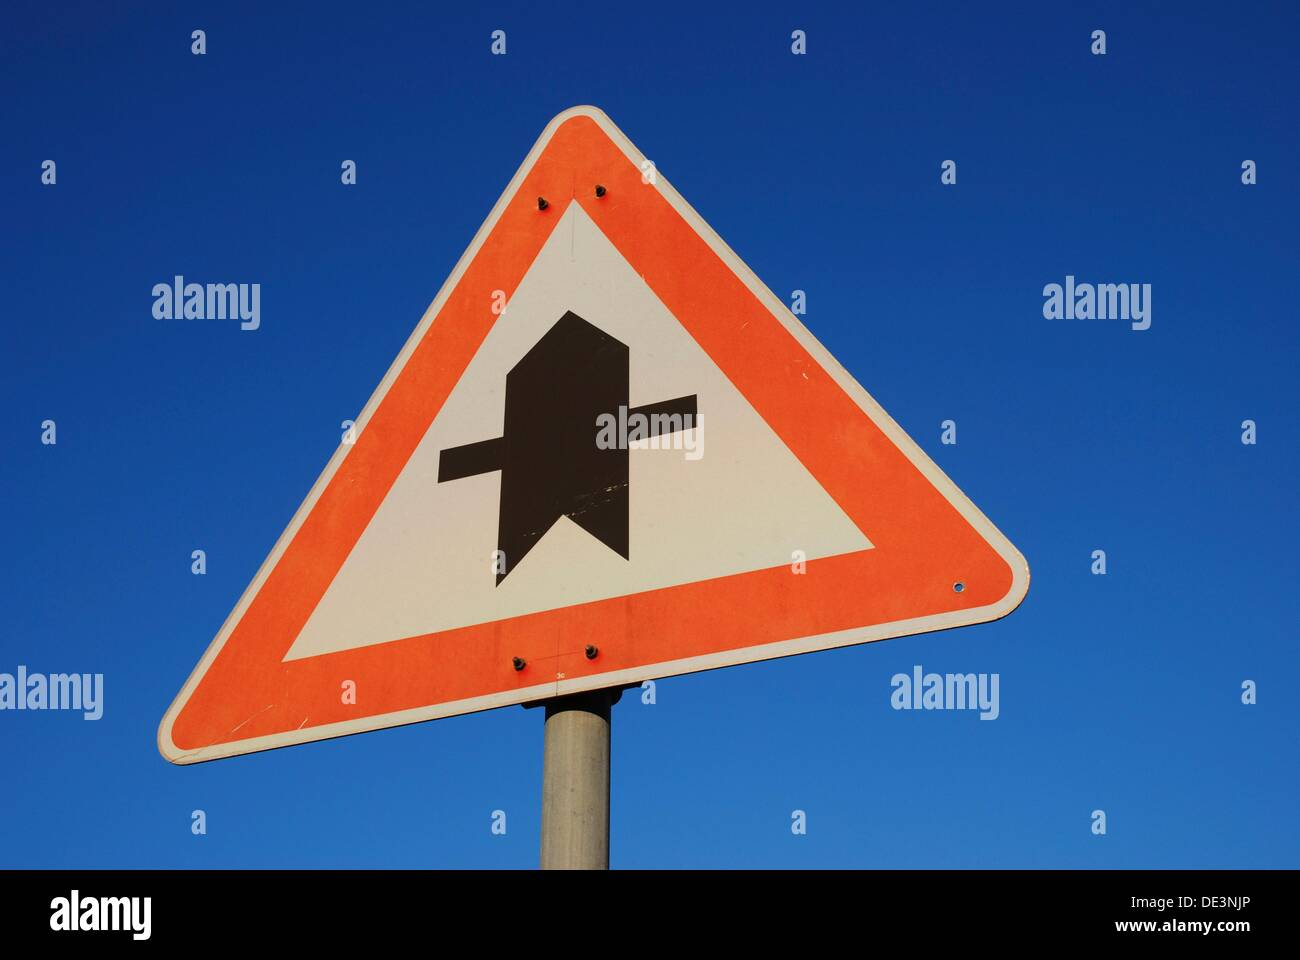 Grant right of way traffic sign - Stock Image